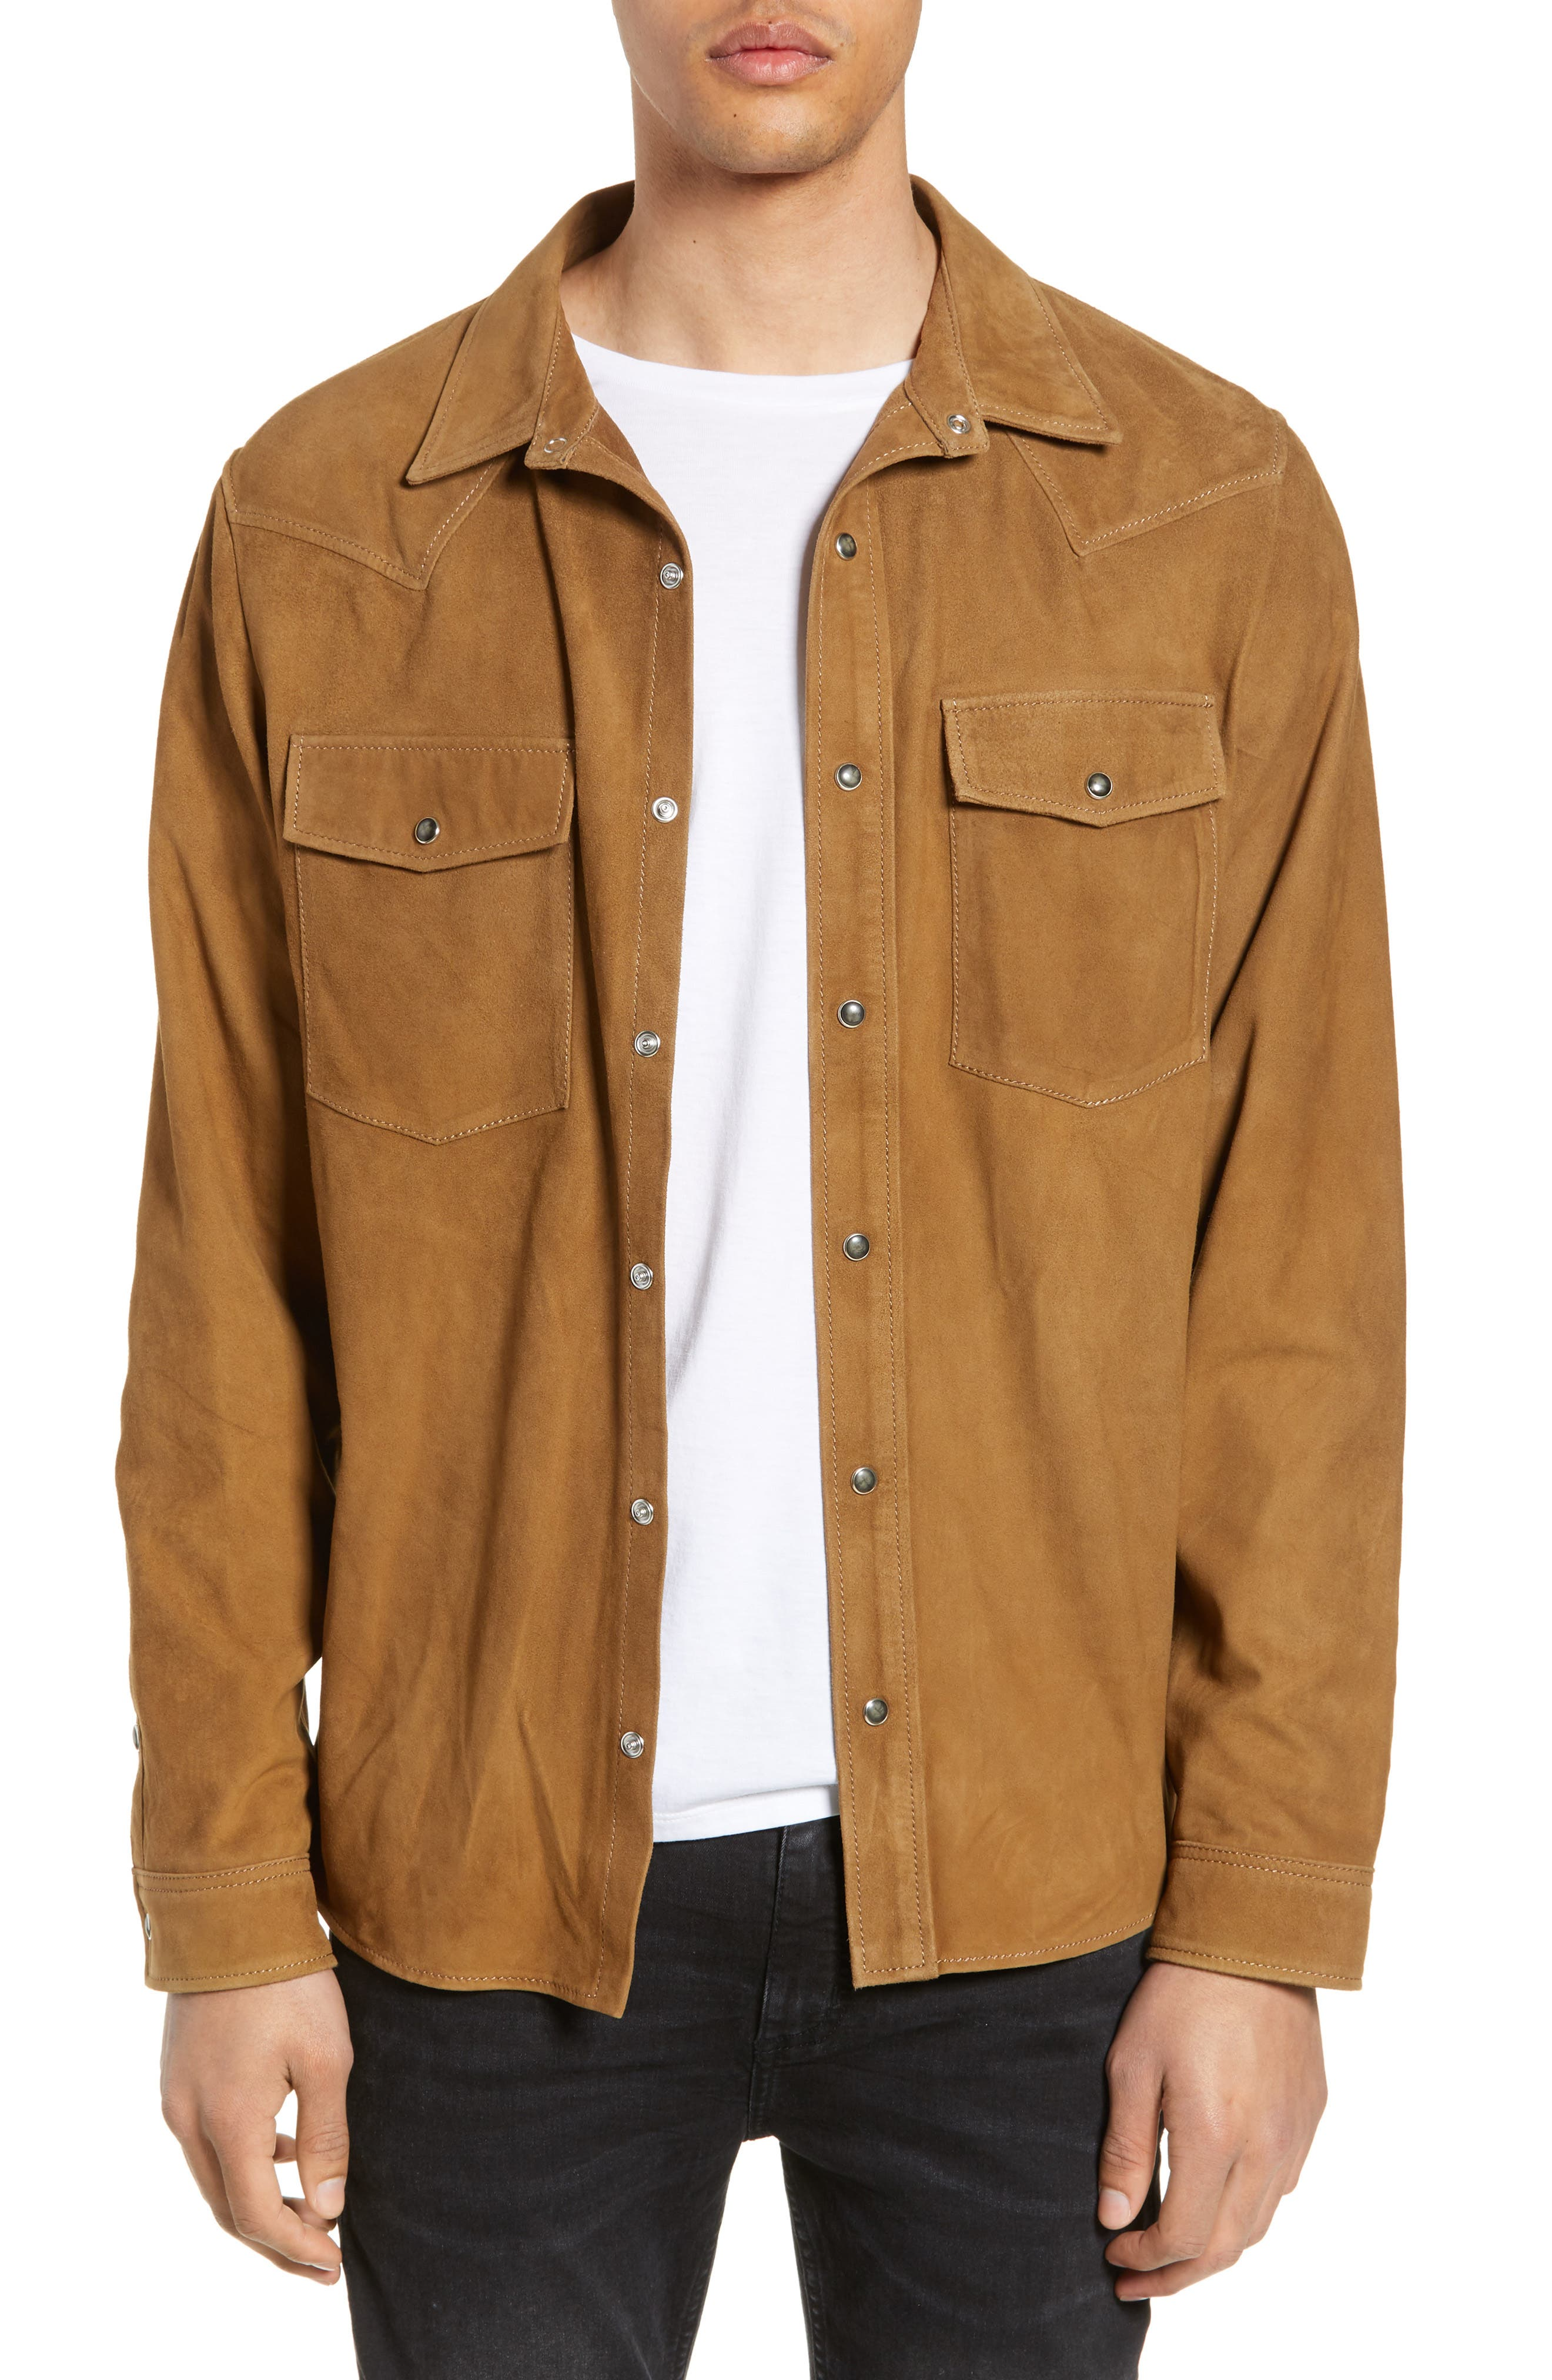 THE KOOPLES, Suede Shirt, Main thumbnail 1, color, CAMEL